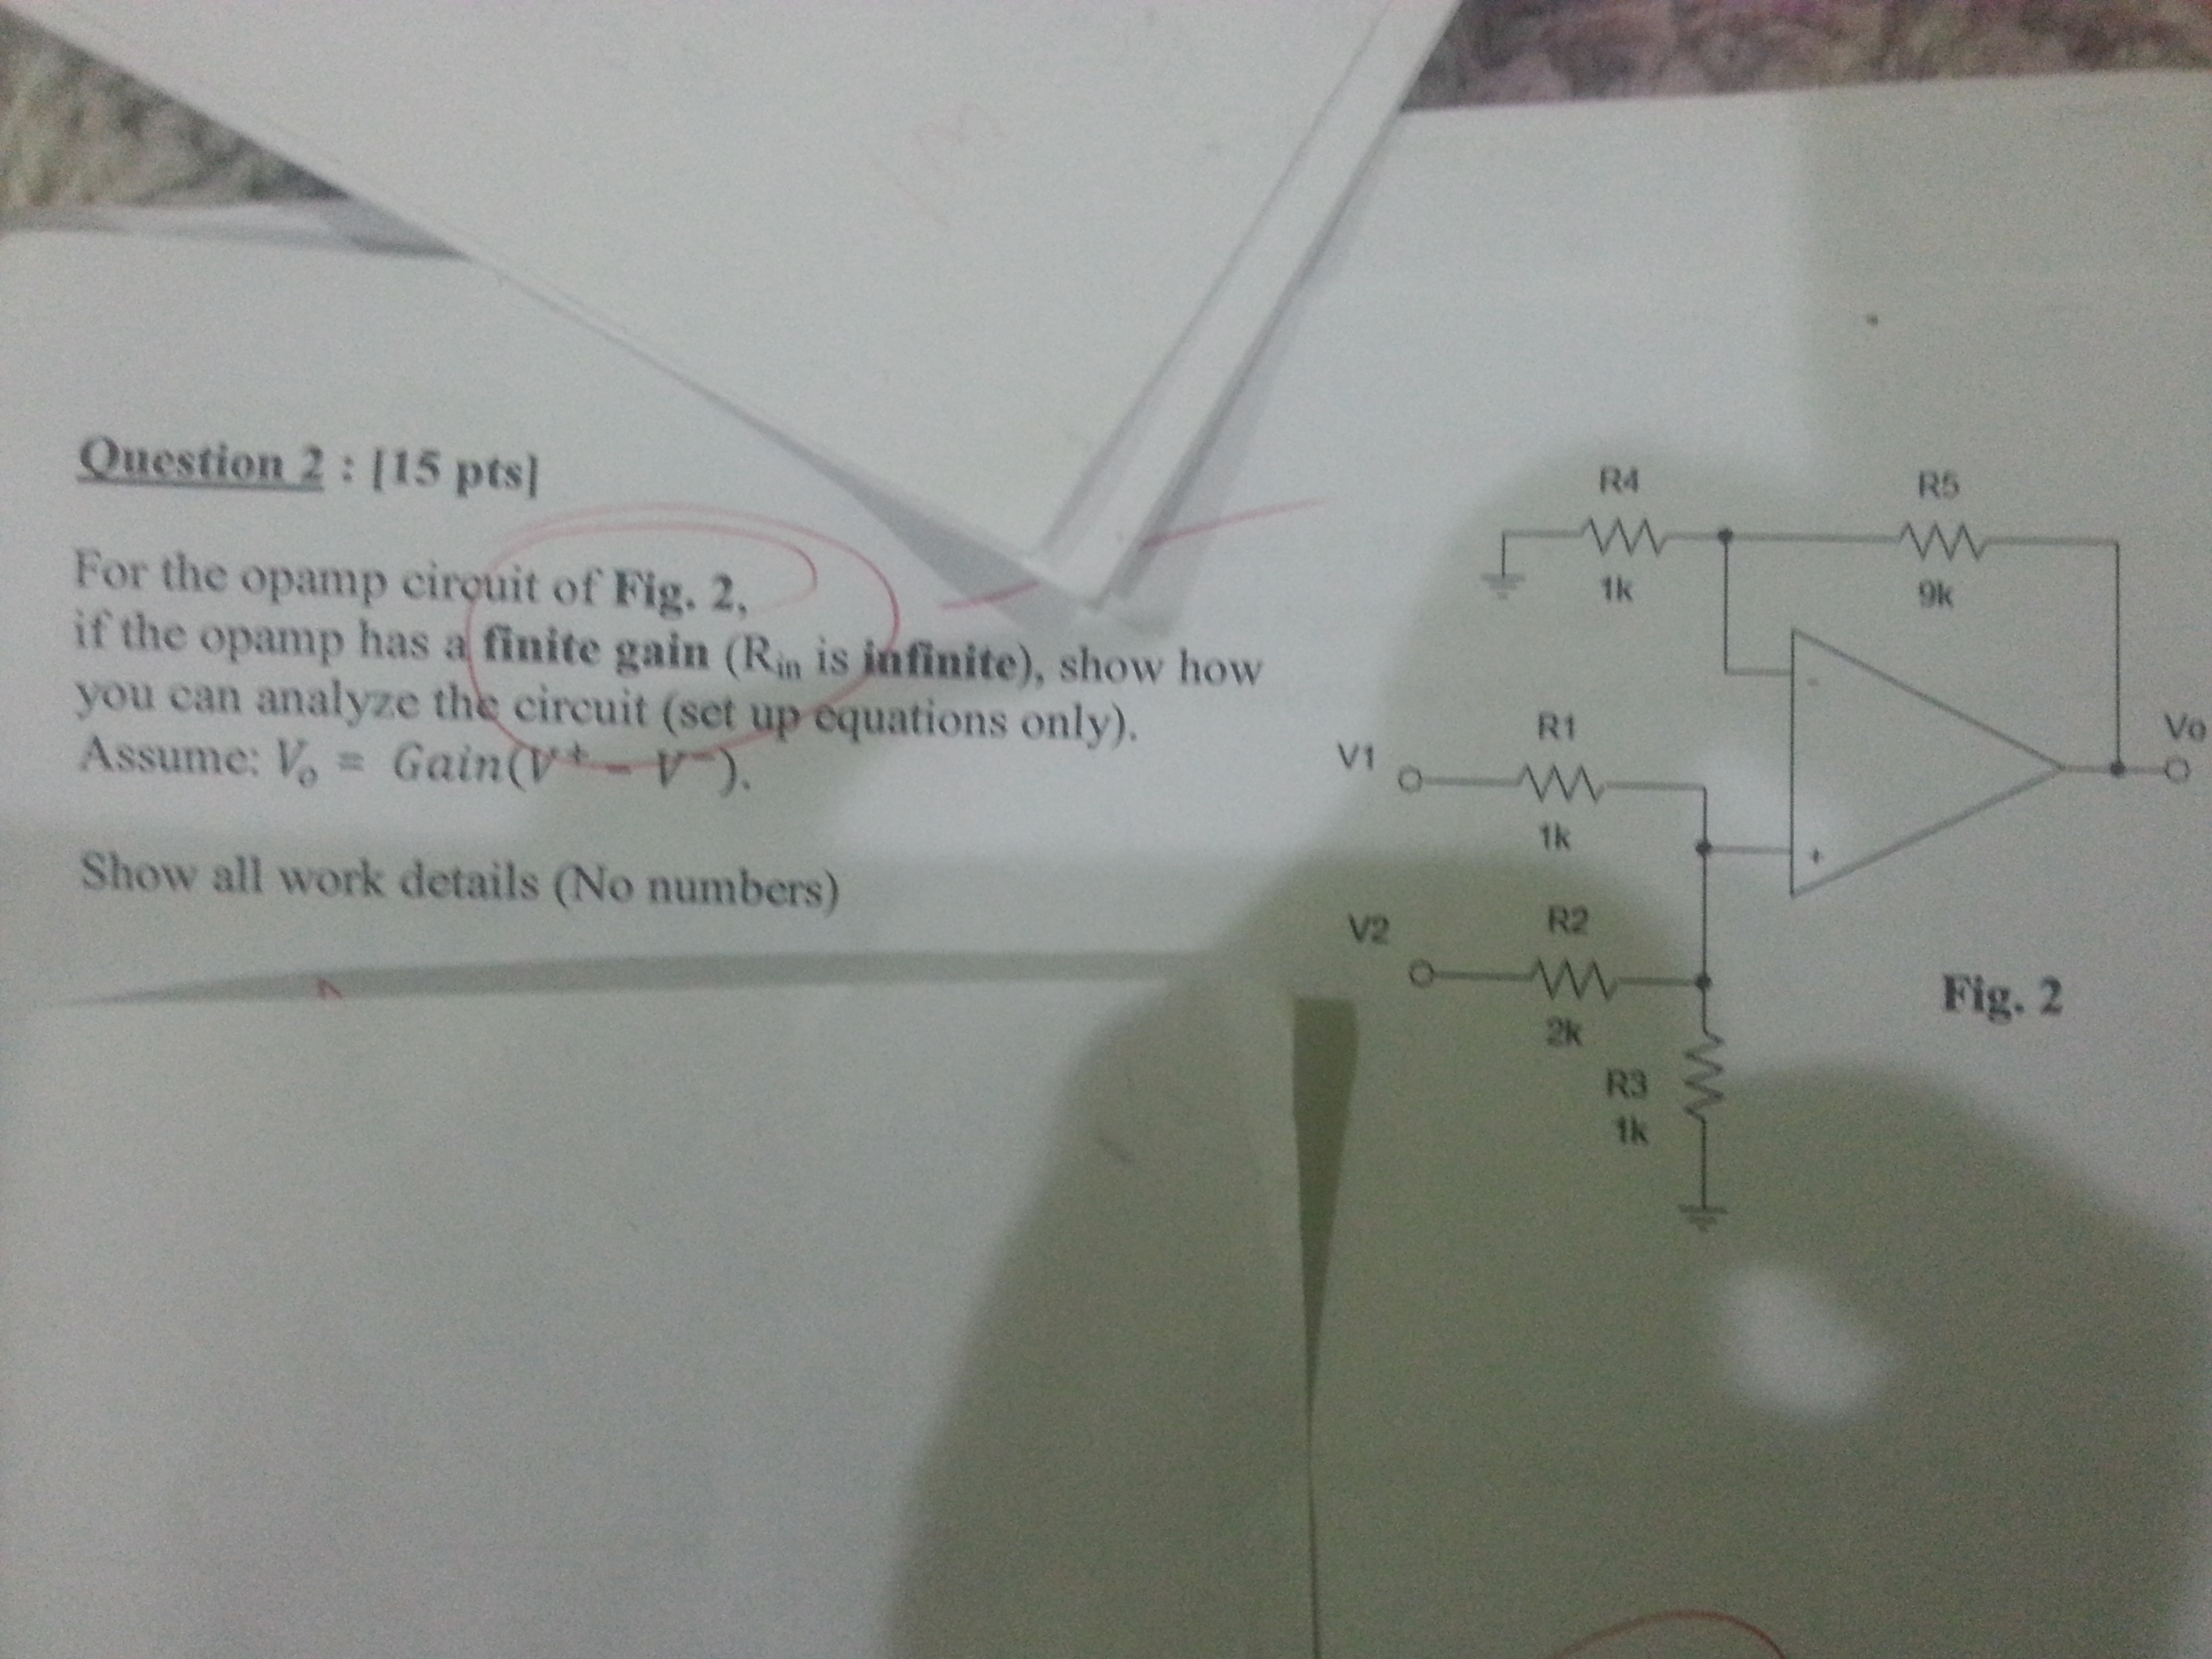 For the opamp circuit of Fig.2, if the opamp has a